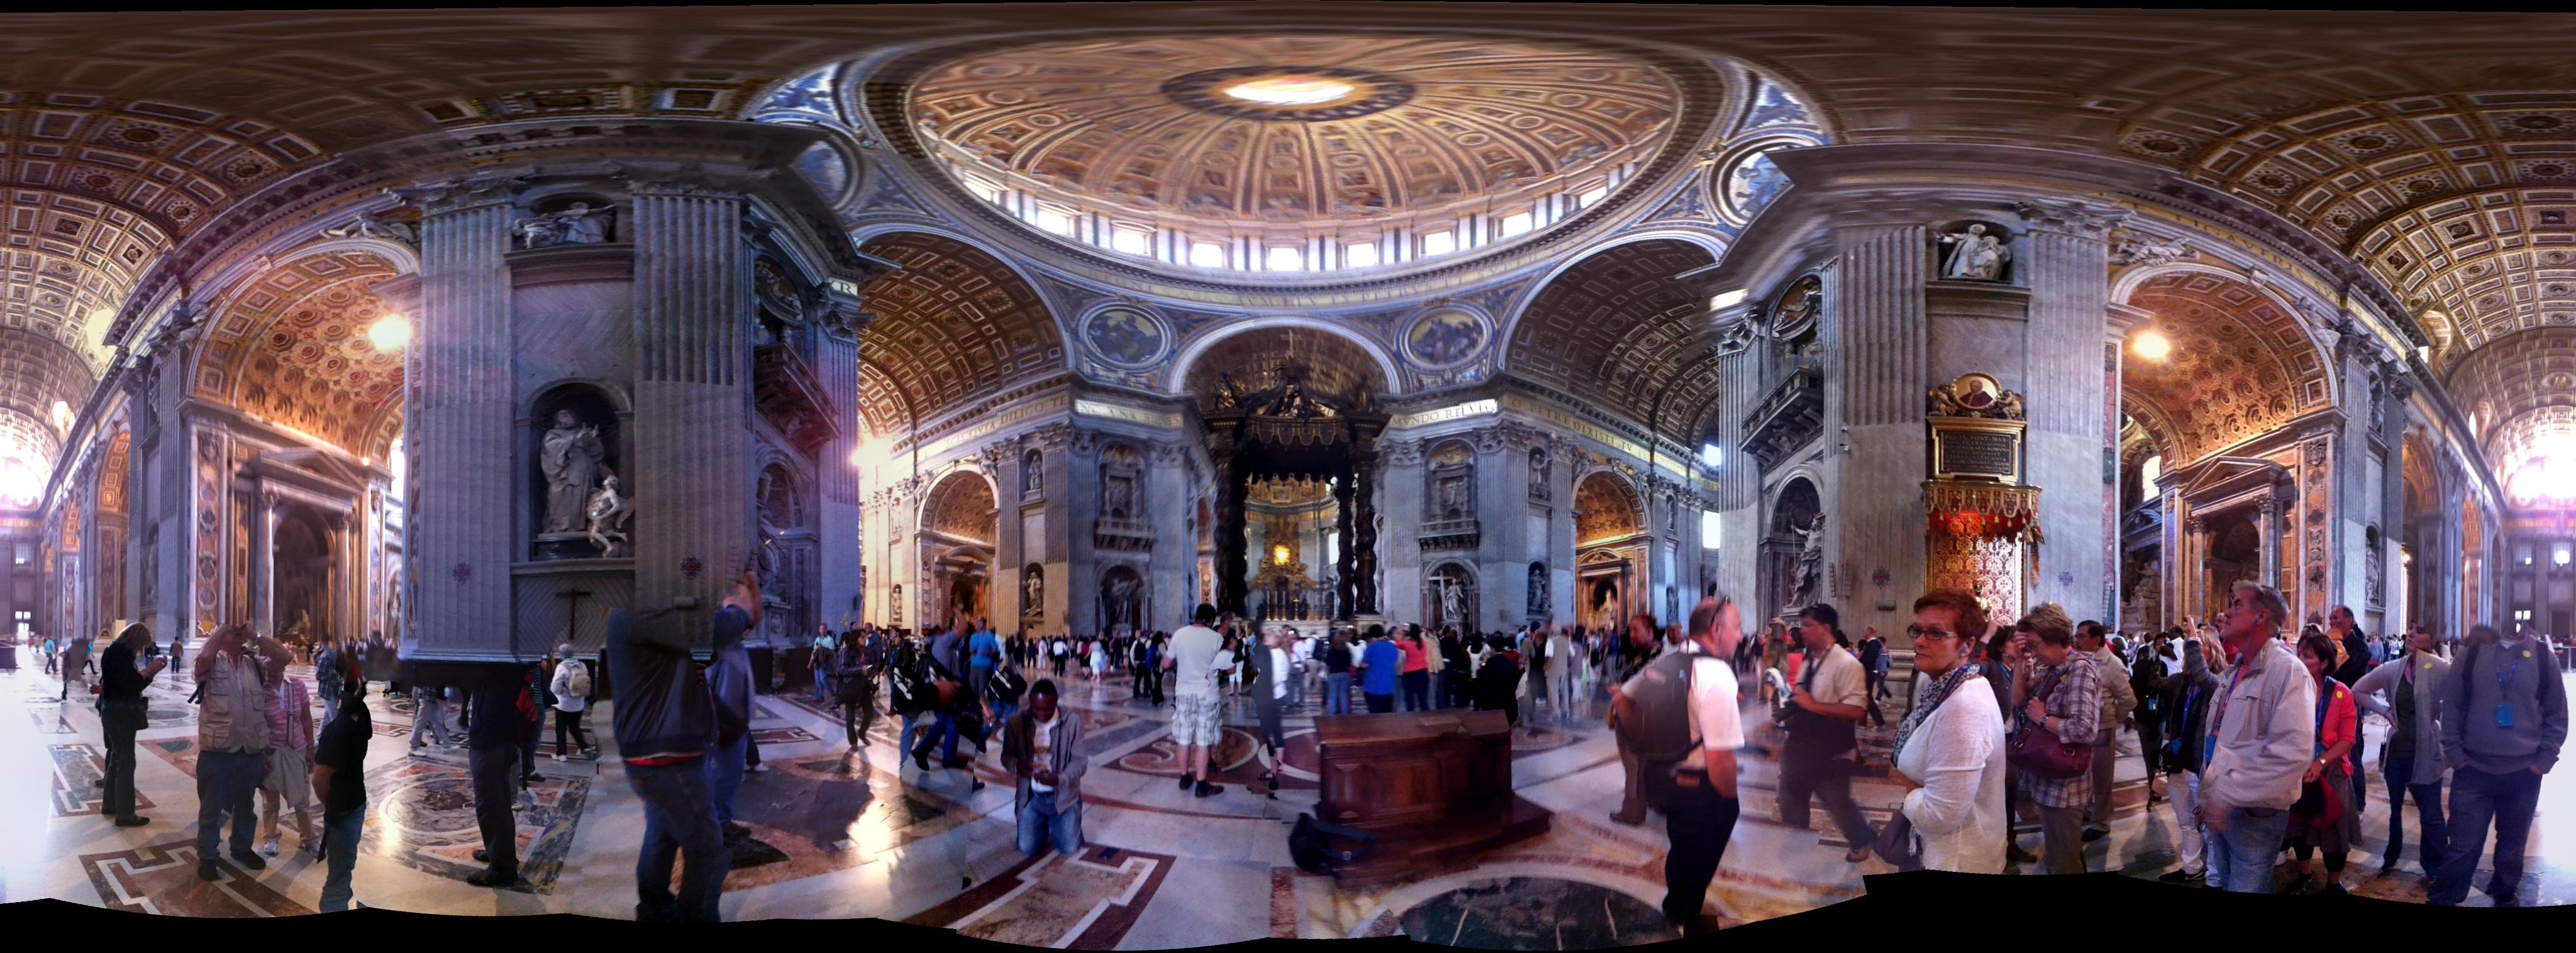 Flattened Panorama of St Peter's Basilica